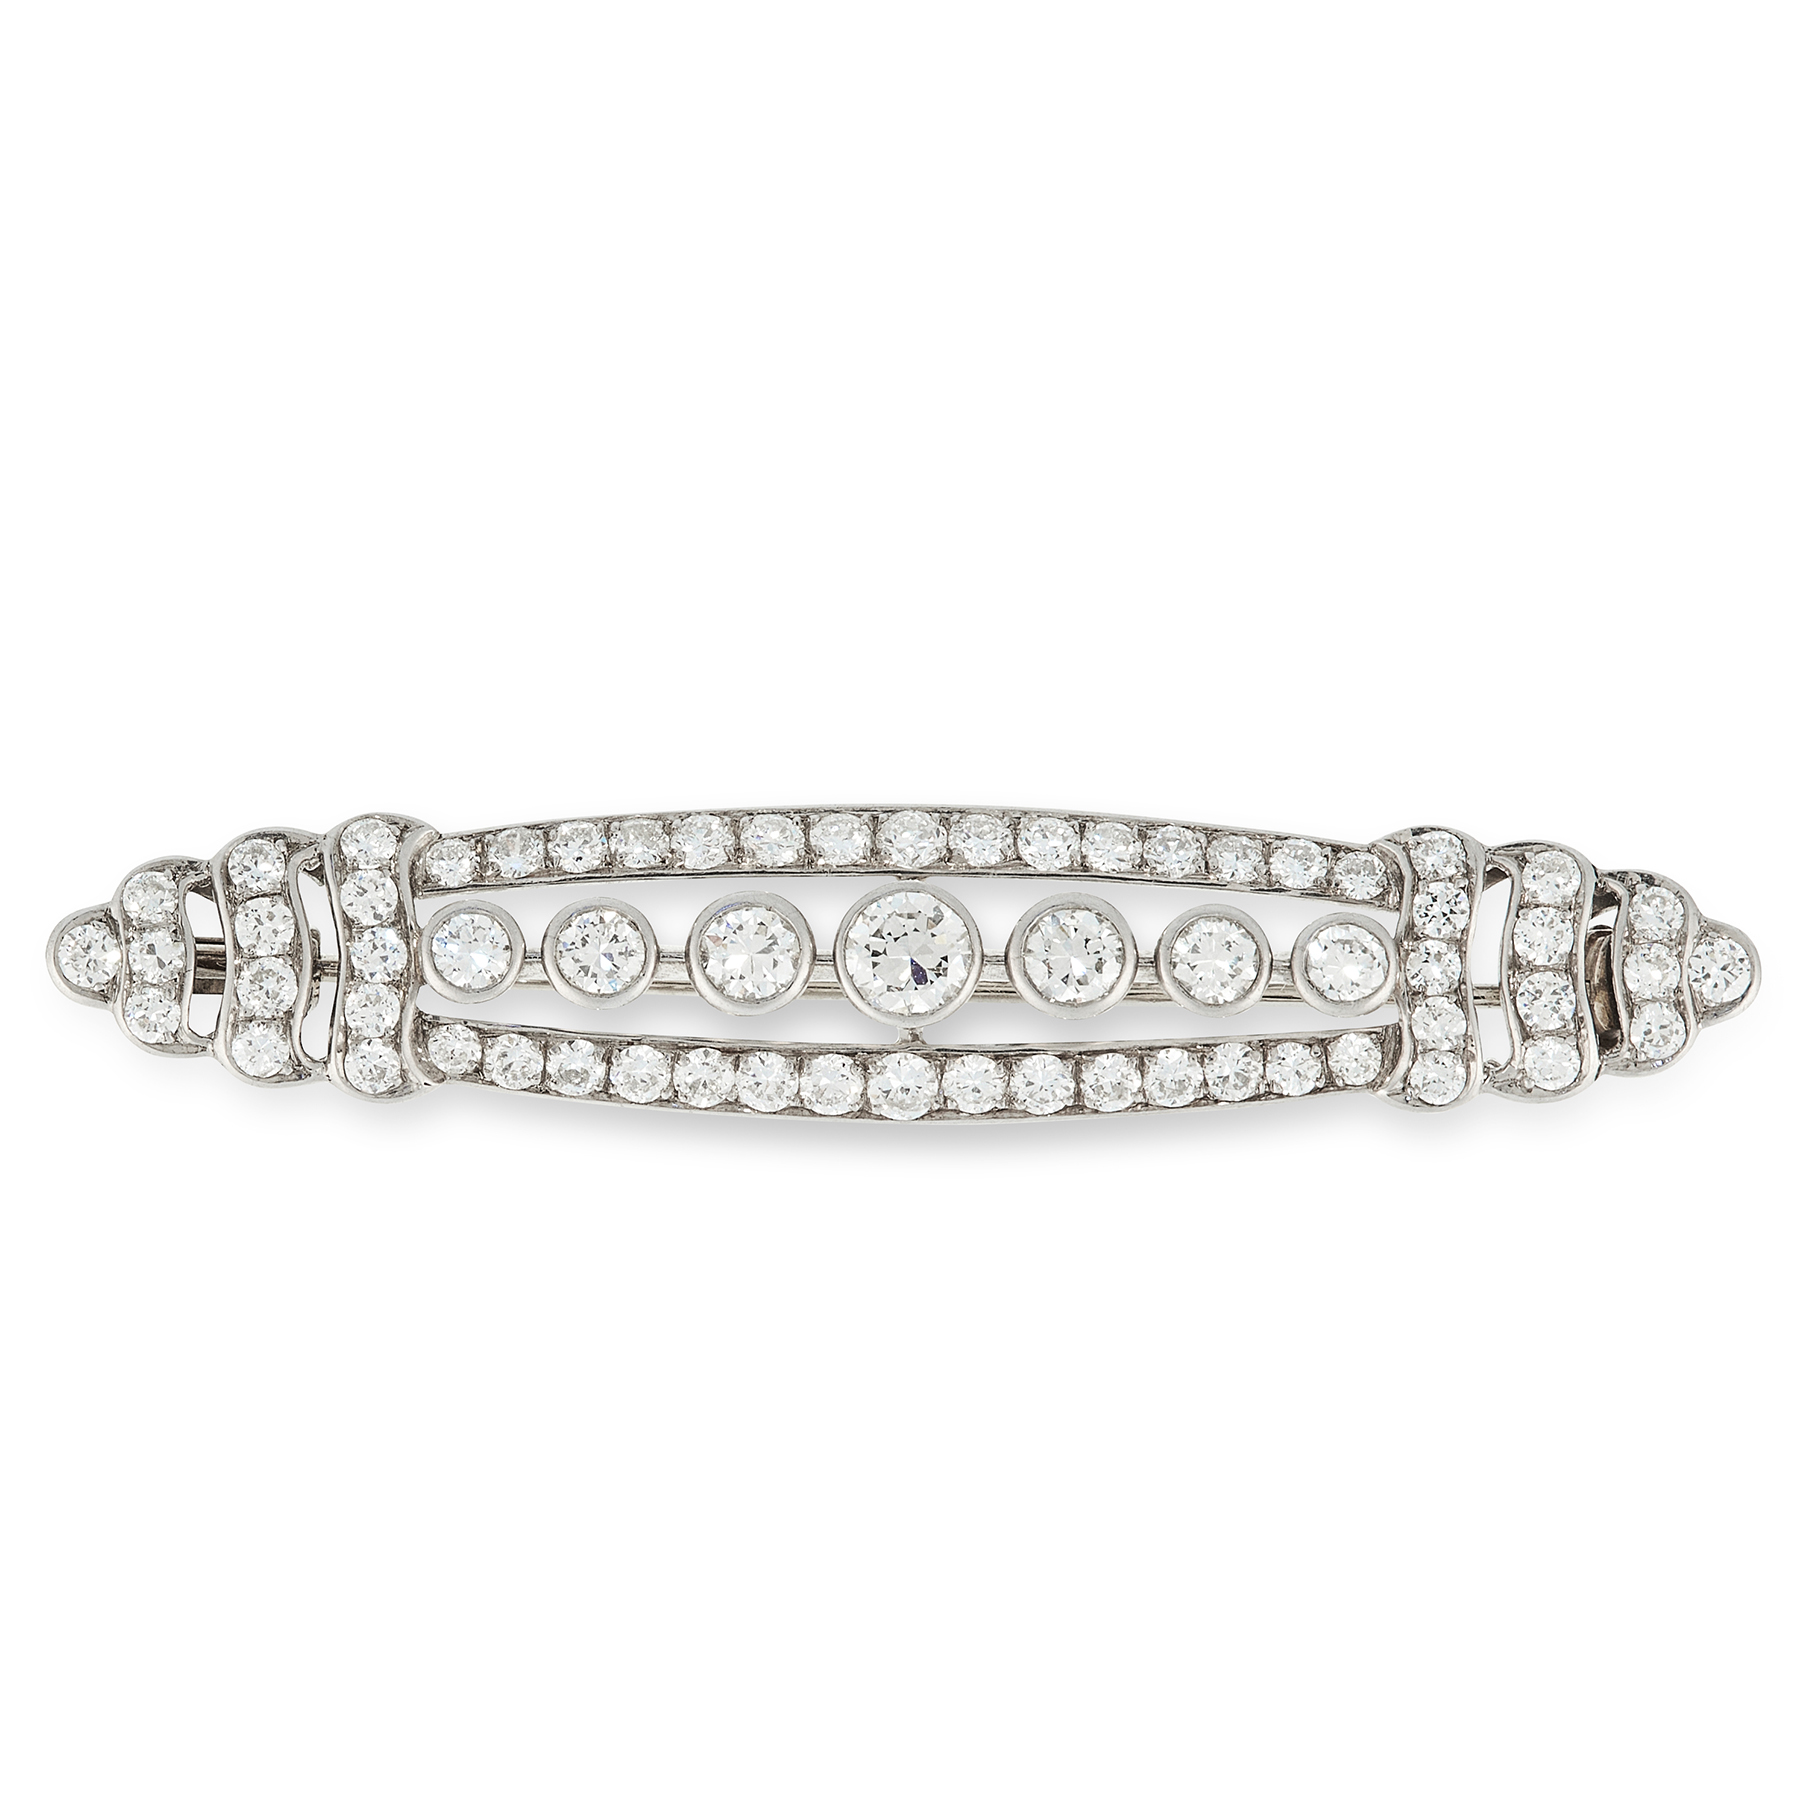 A DIAMOND BROOCH in white gold, the elongated oval body set with a row of seven principal old